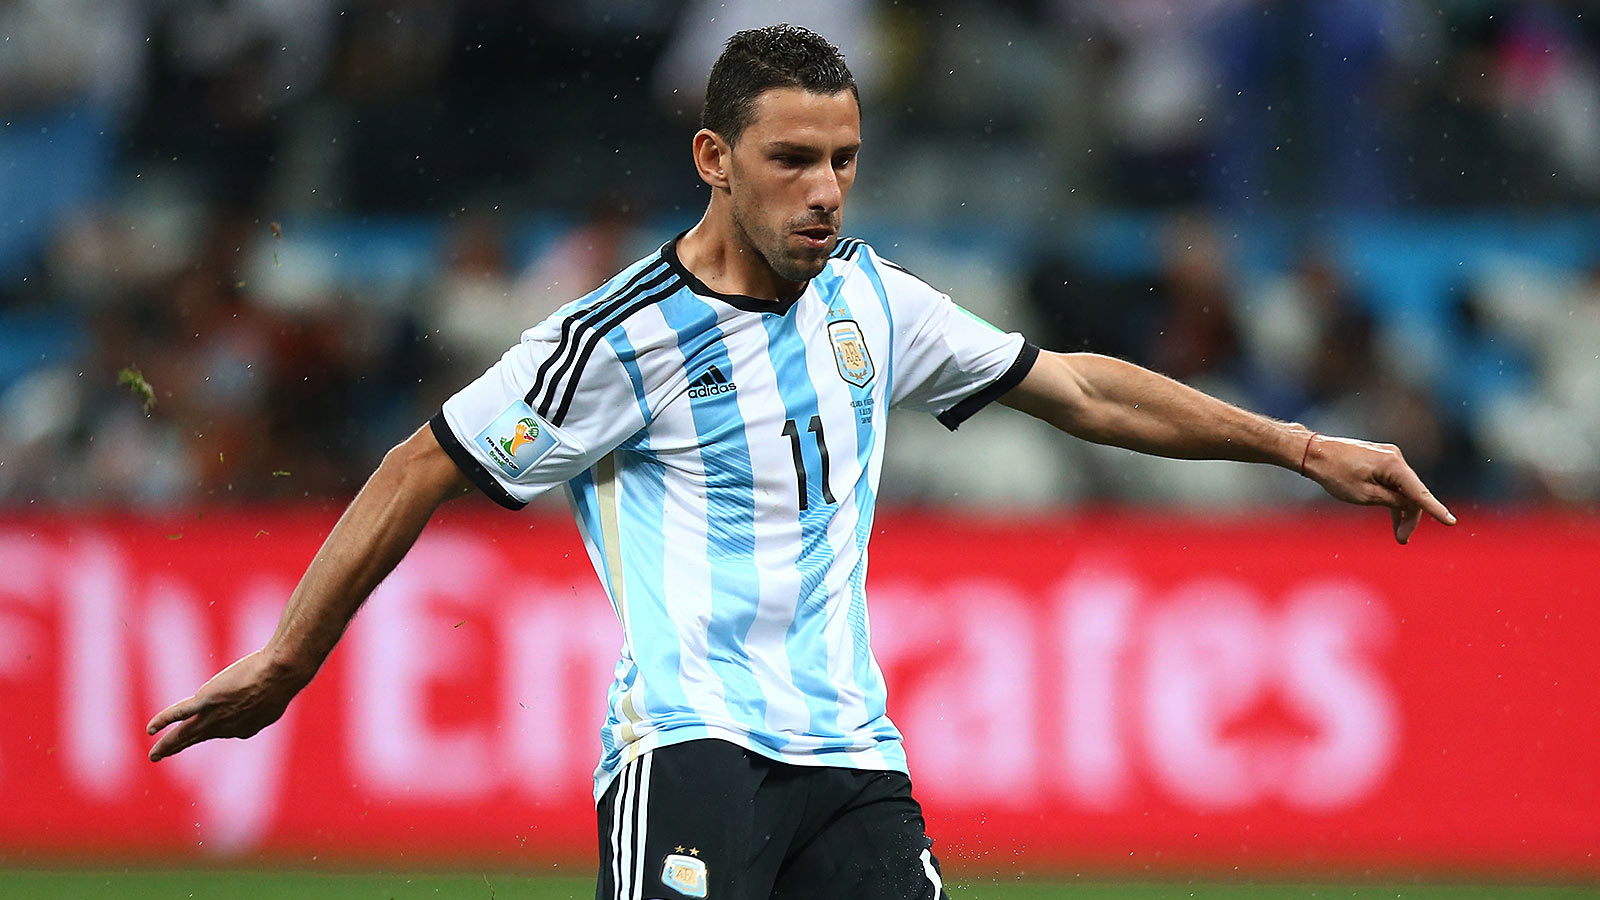 Shots fired outside home of Maxi Rodriguez's grandmother